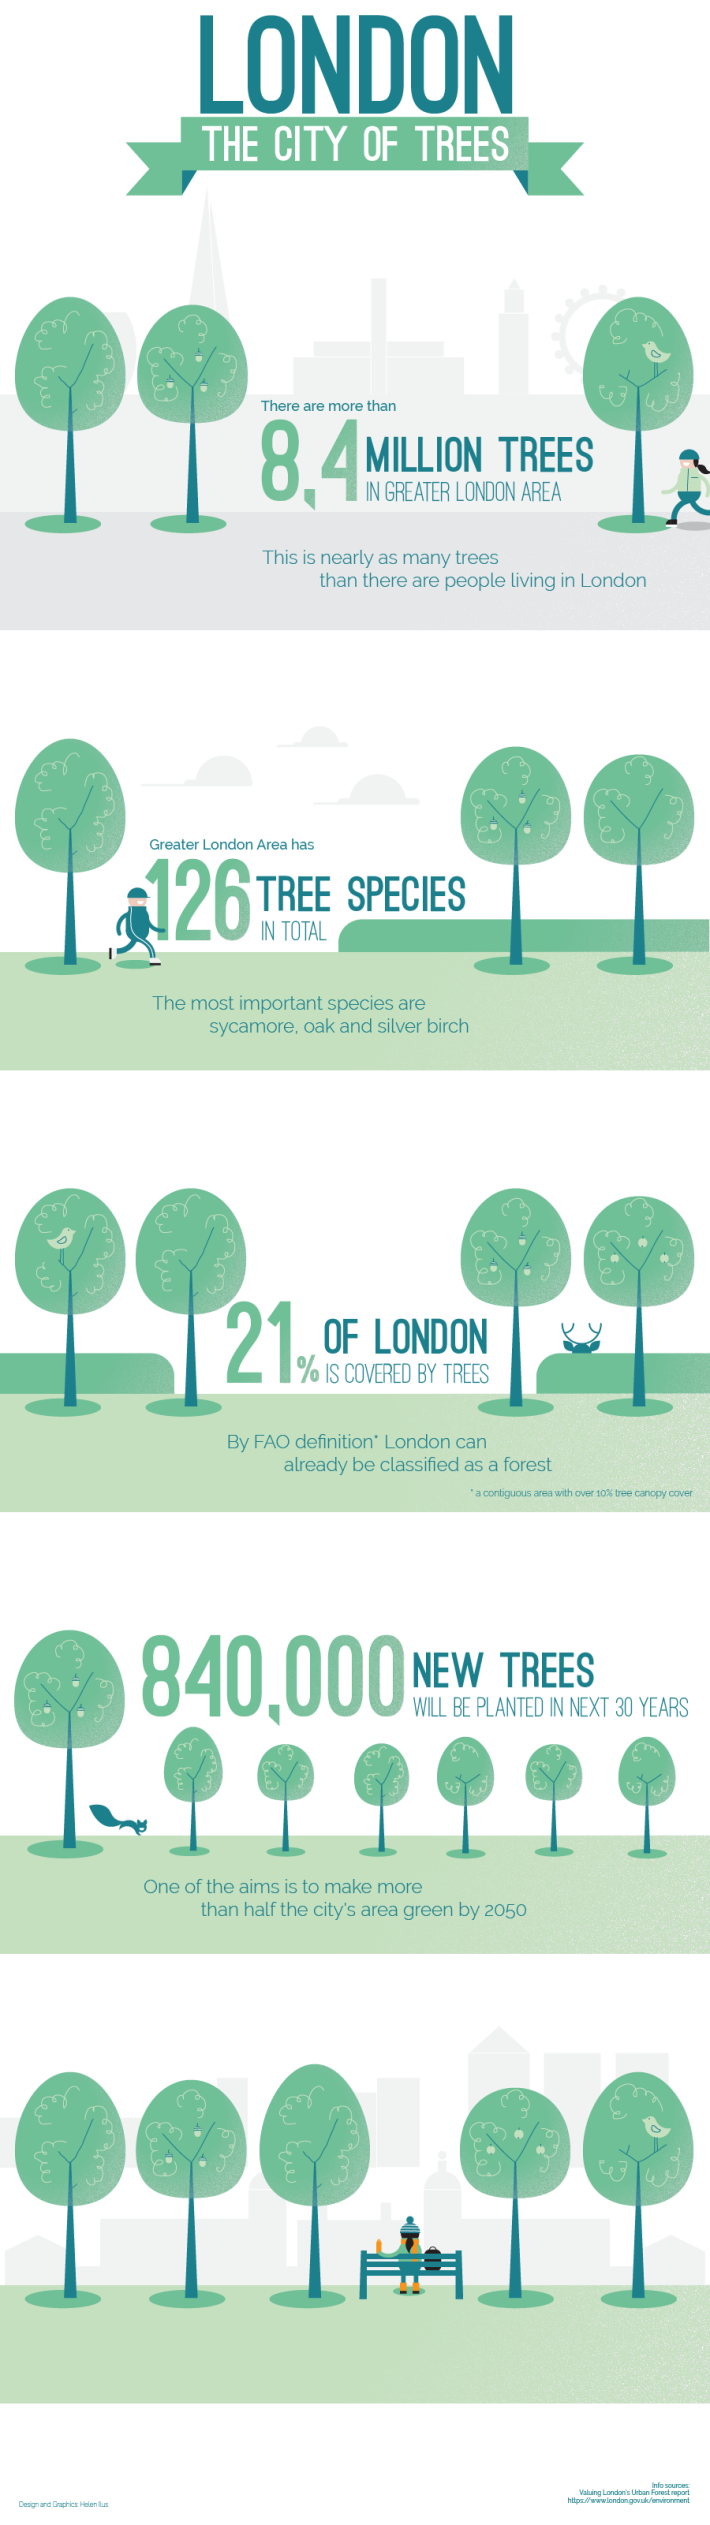 London - The City of Trees